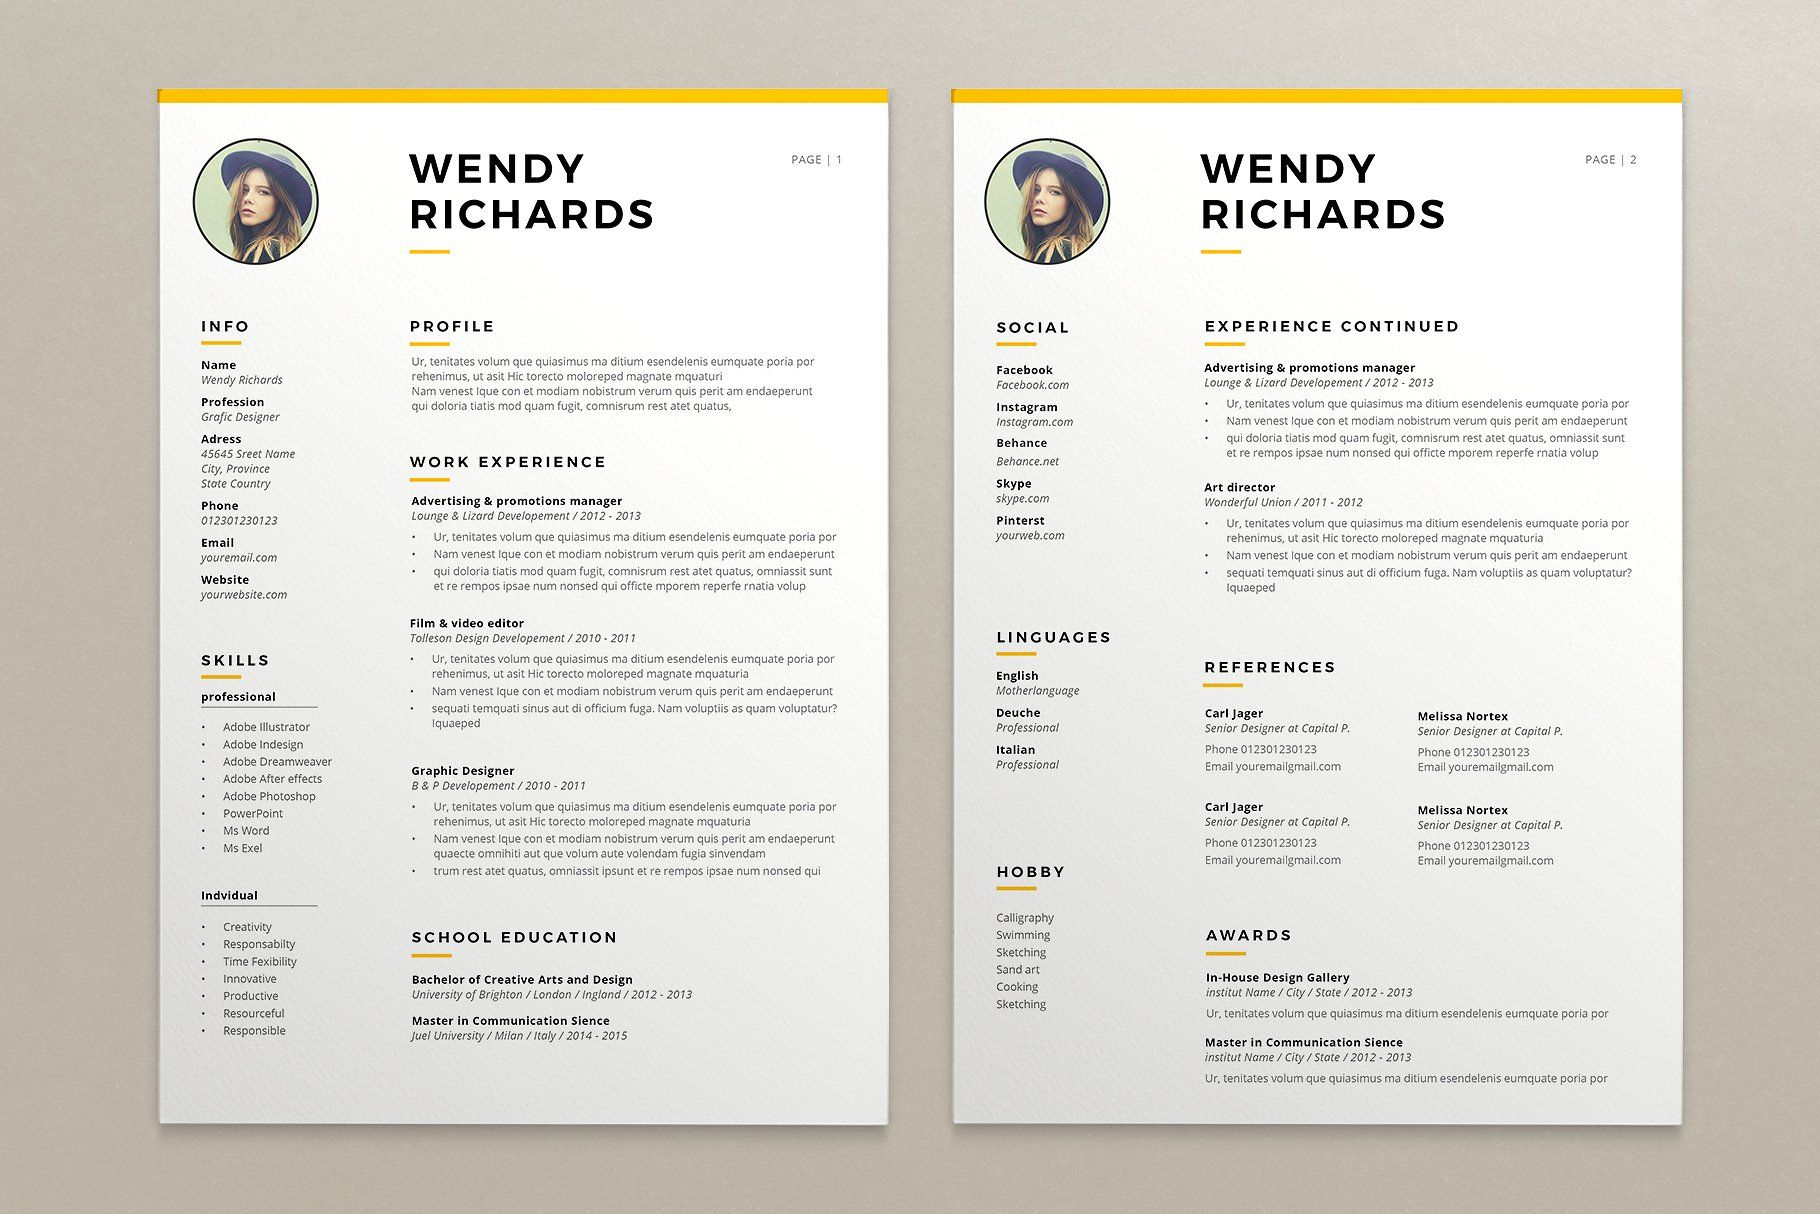 resume and cover letter service sydney